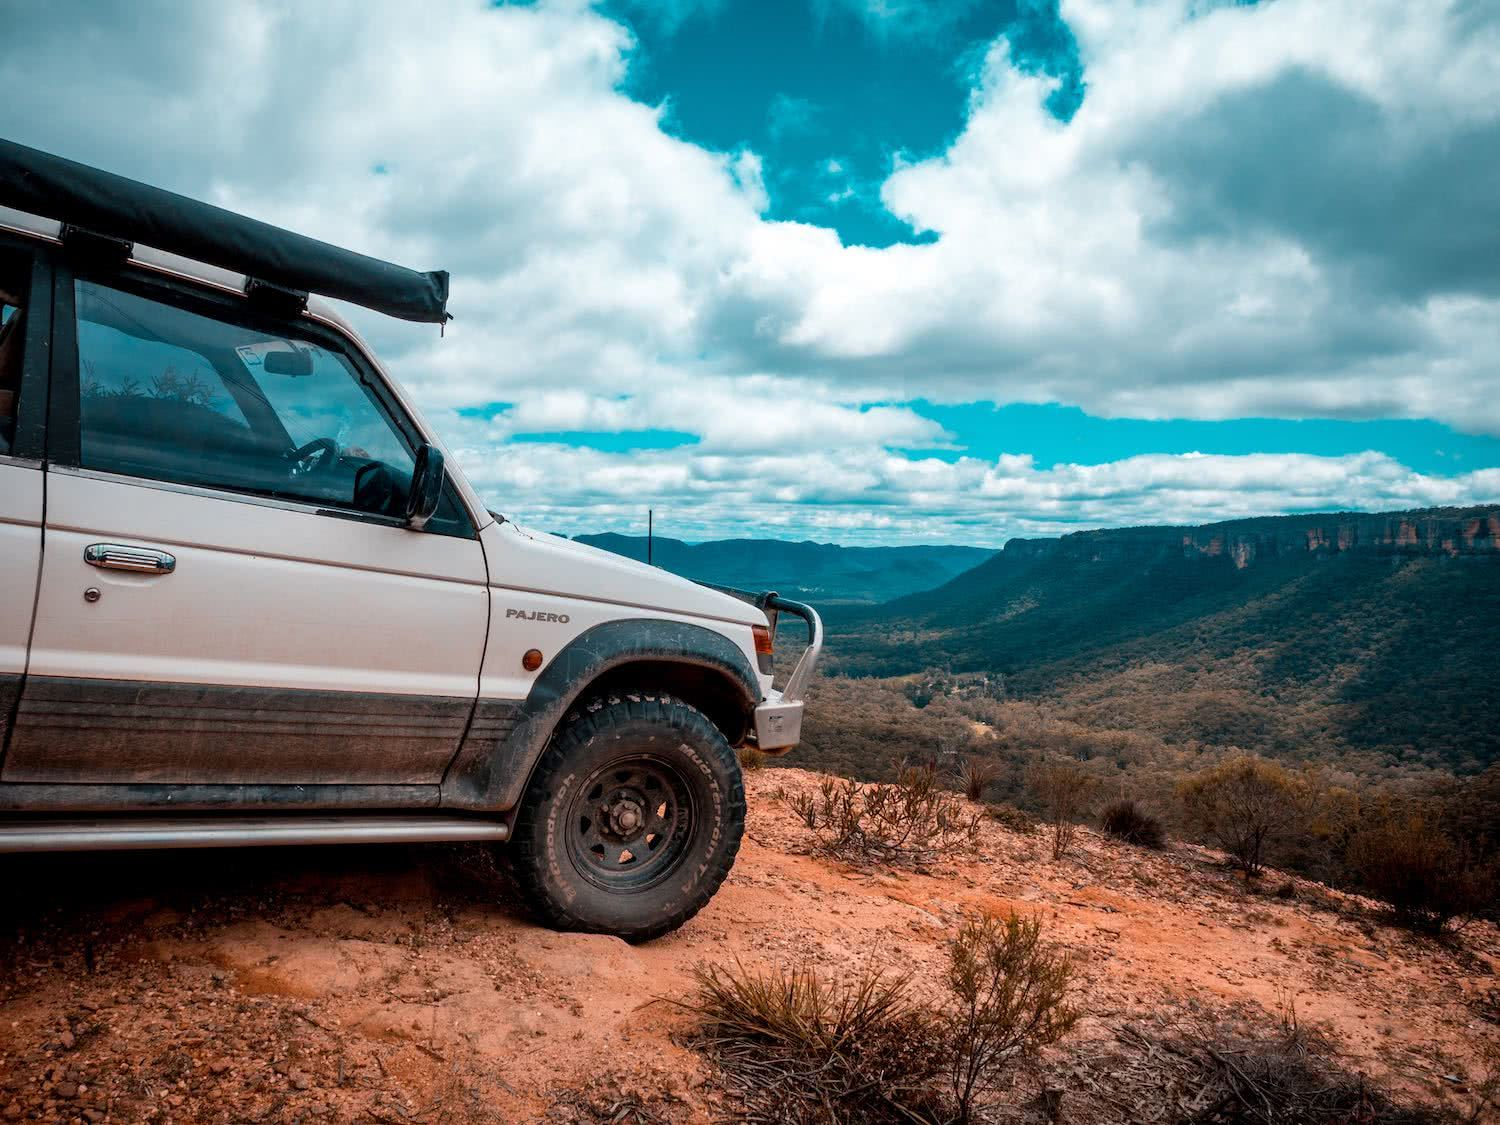 Luke mallinson, pajero, car, wolgan valley, 4wd, view, valley, blue mountains, how to prepare your car for a summer road trip